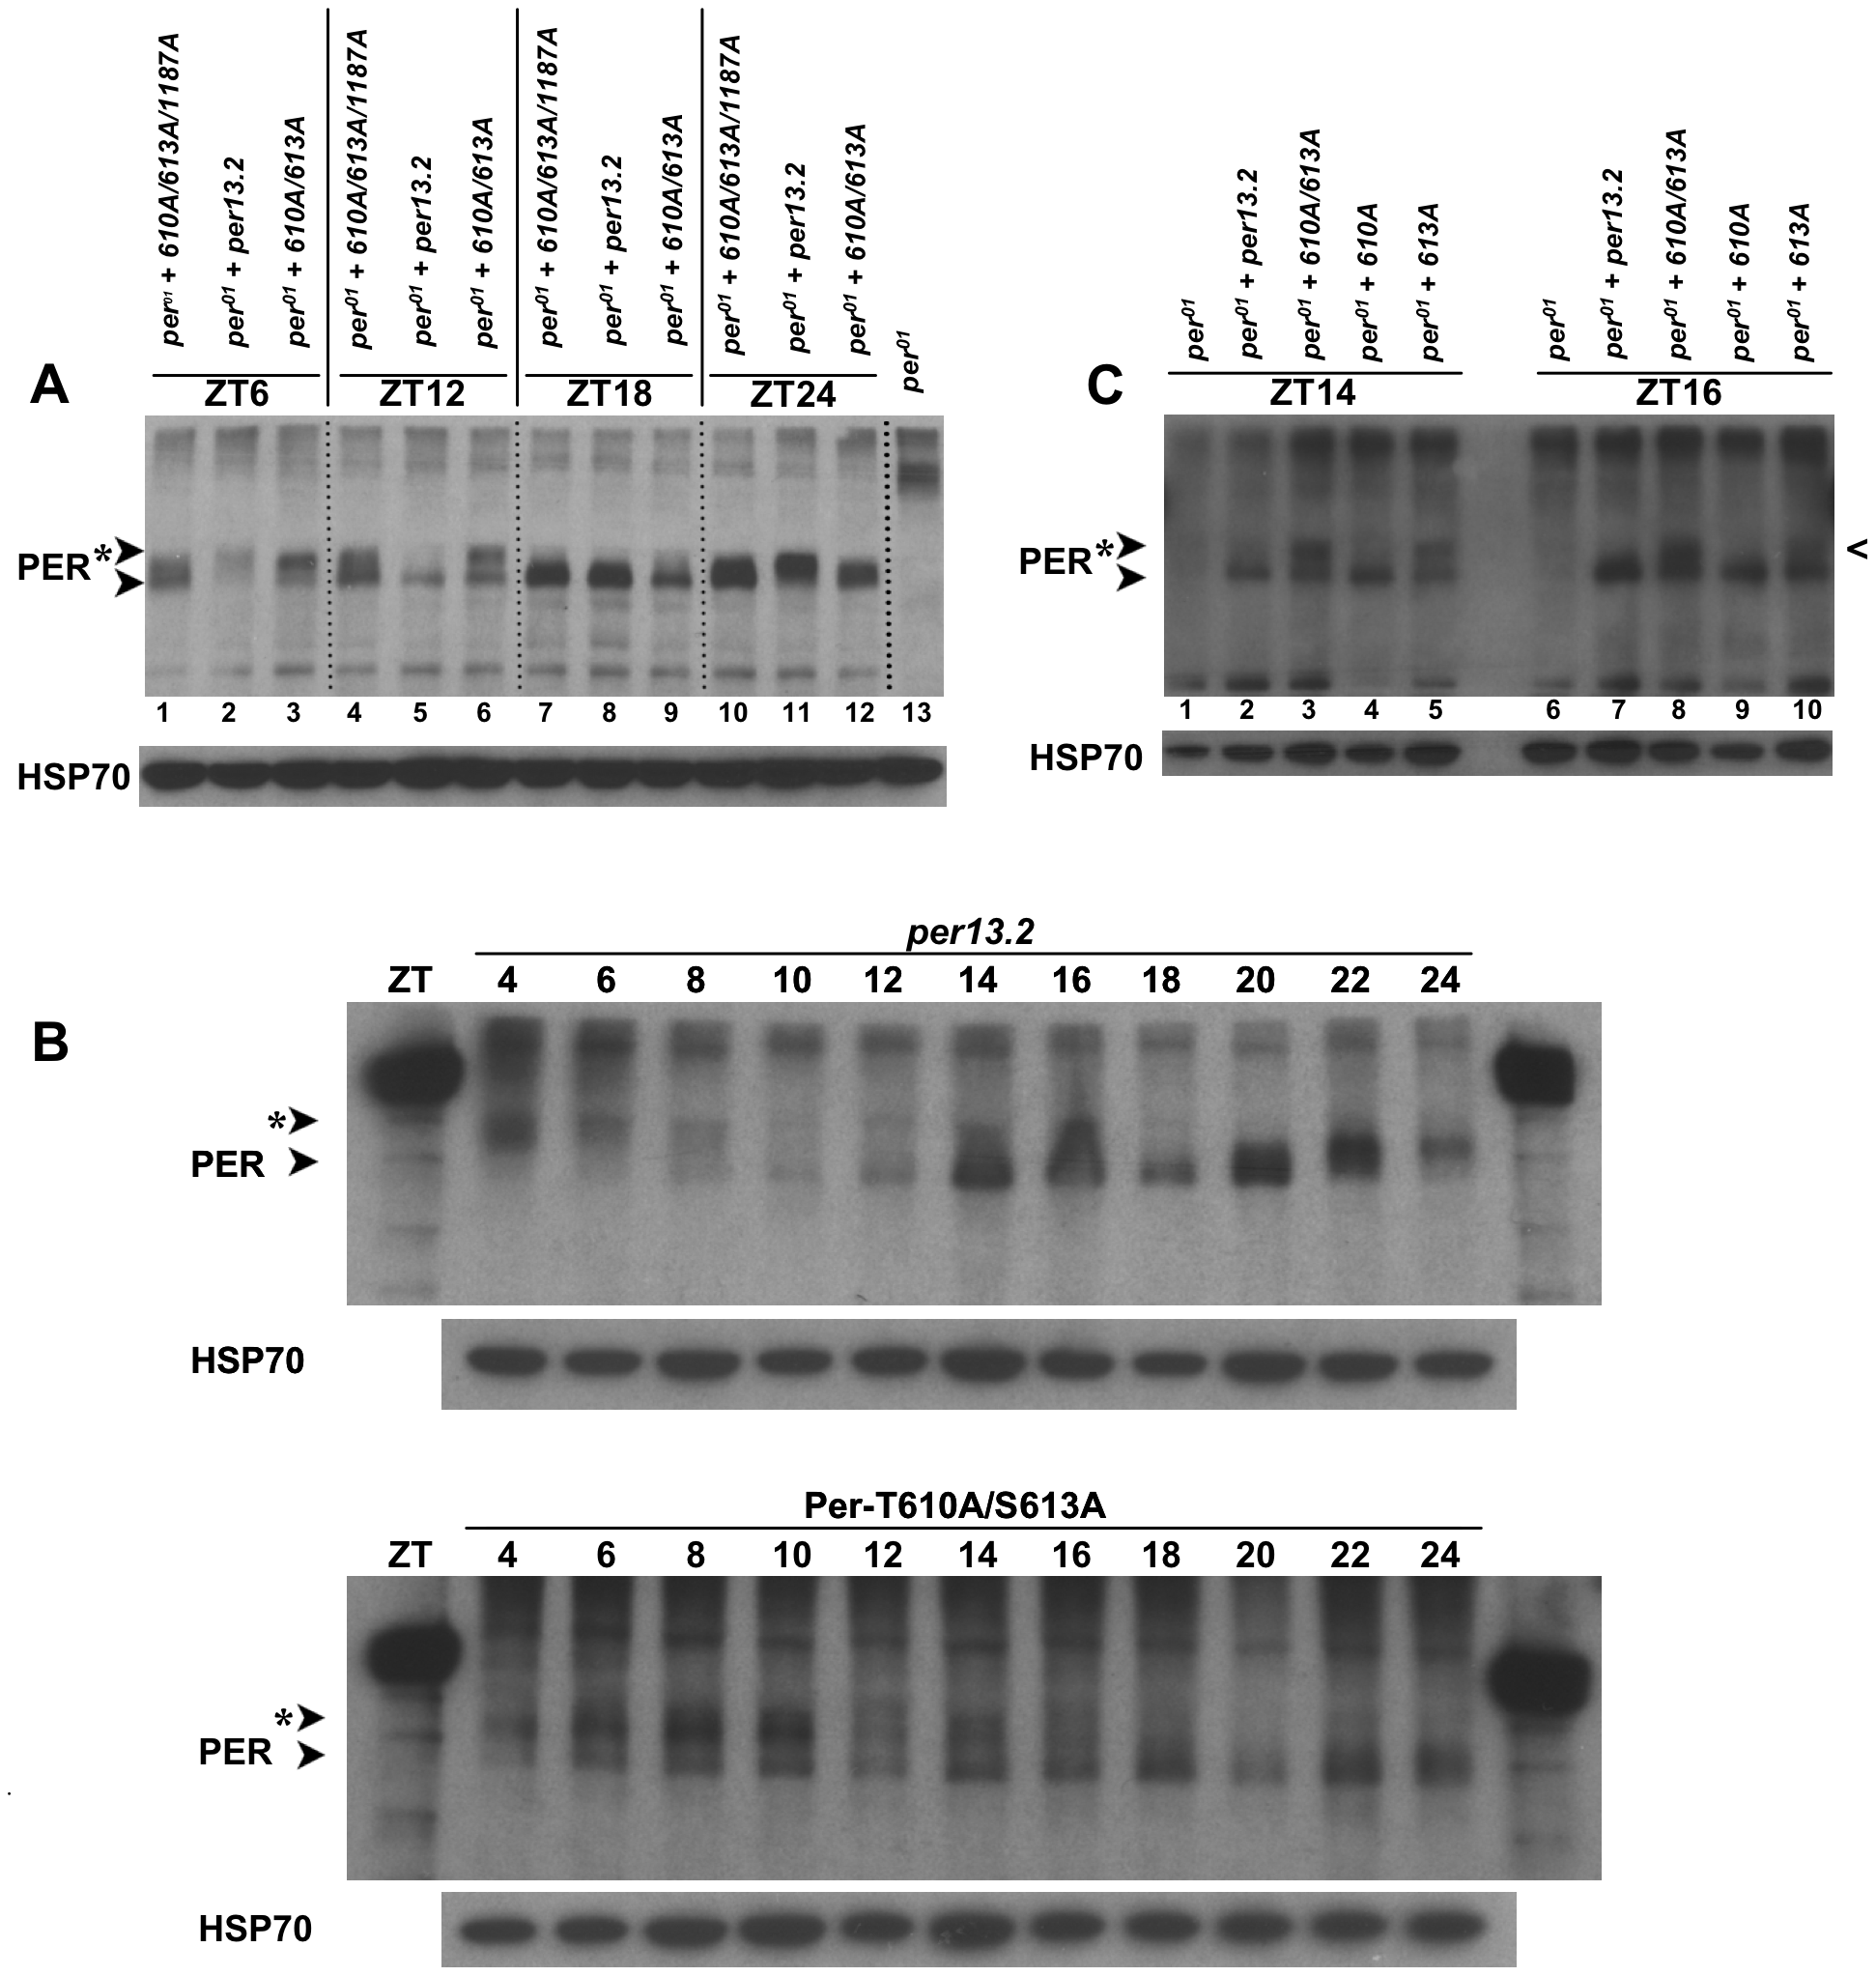 PER-T610A/S613A exhibits defects in protein phosphorylation and stability.